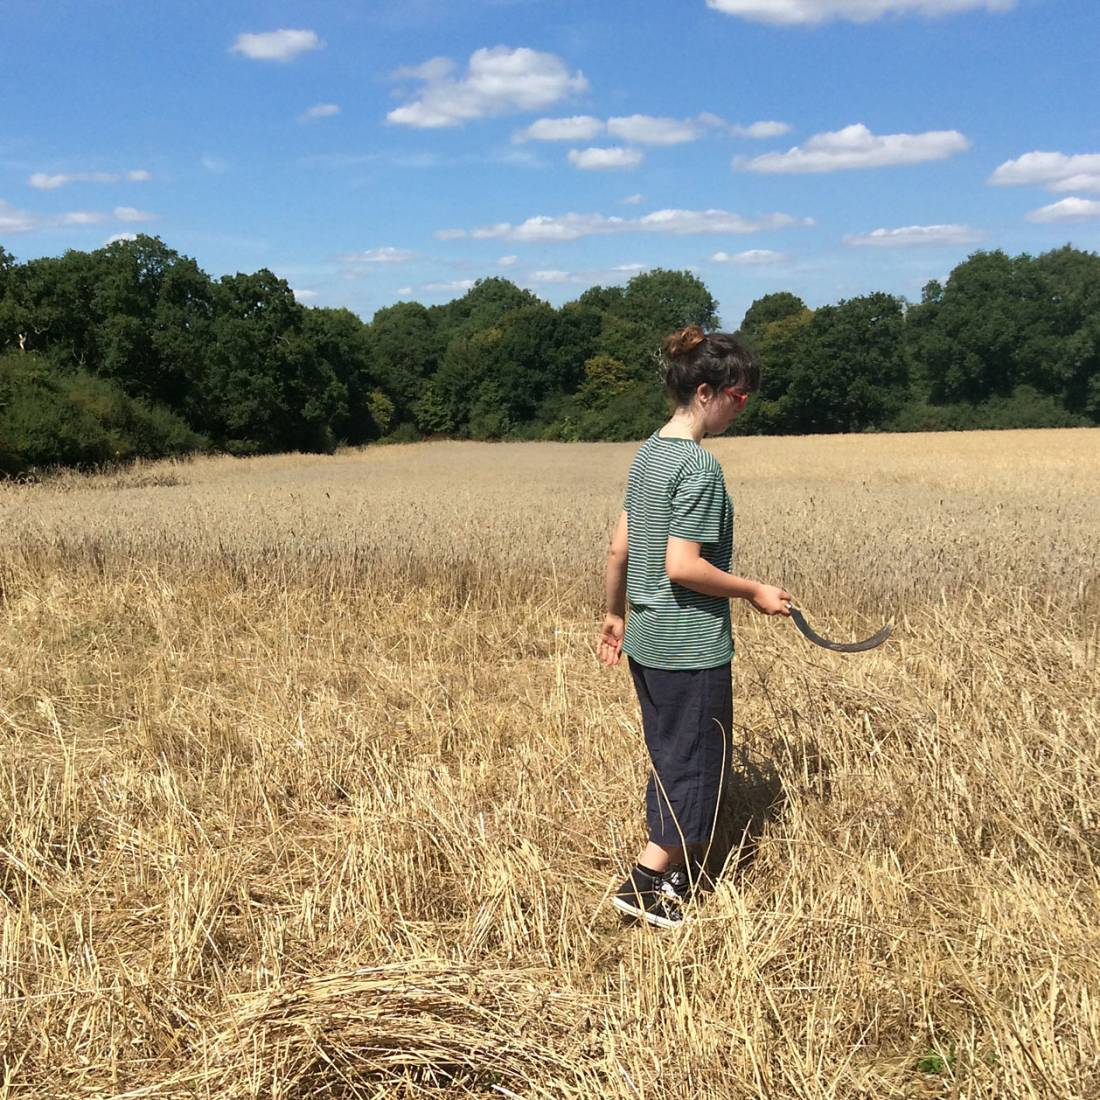 sickle action, our manual harvest at Lodge Farm, pics = <a href='http://www.annbodkin.co.uk/' target='_blank'>Ann Bodkin</a> - 1:59pm&nbsp;13<sup>th</sup>&nbsp;Aug.&nbsp;'17